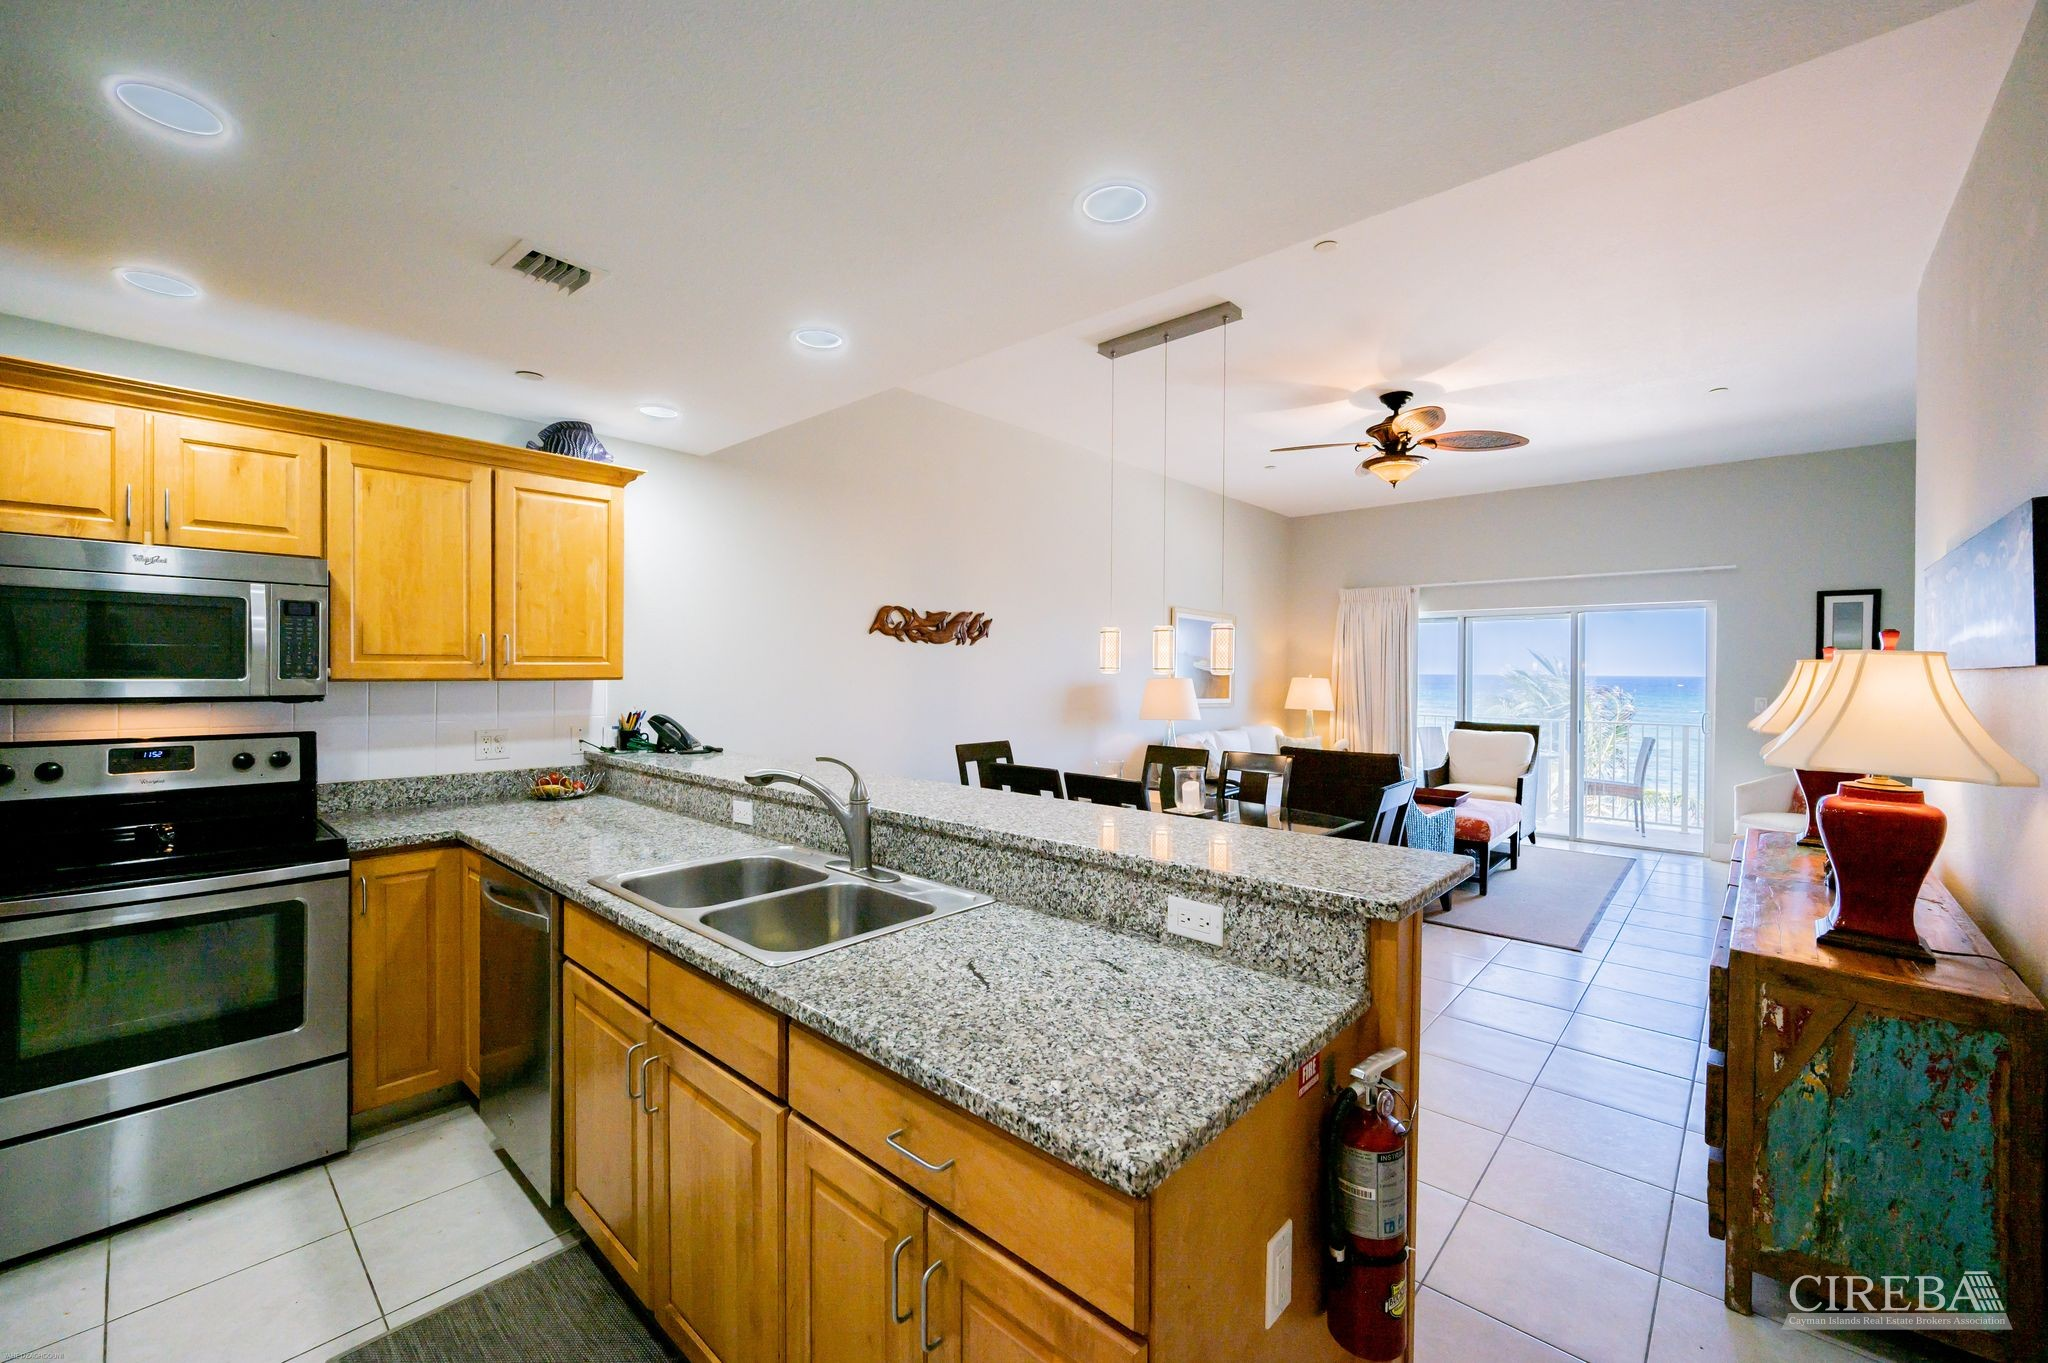 Granite countertops, stainless steel appliances, tastefully decorated throughout.